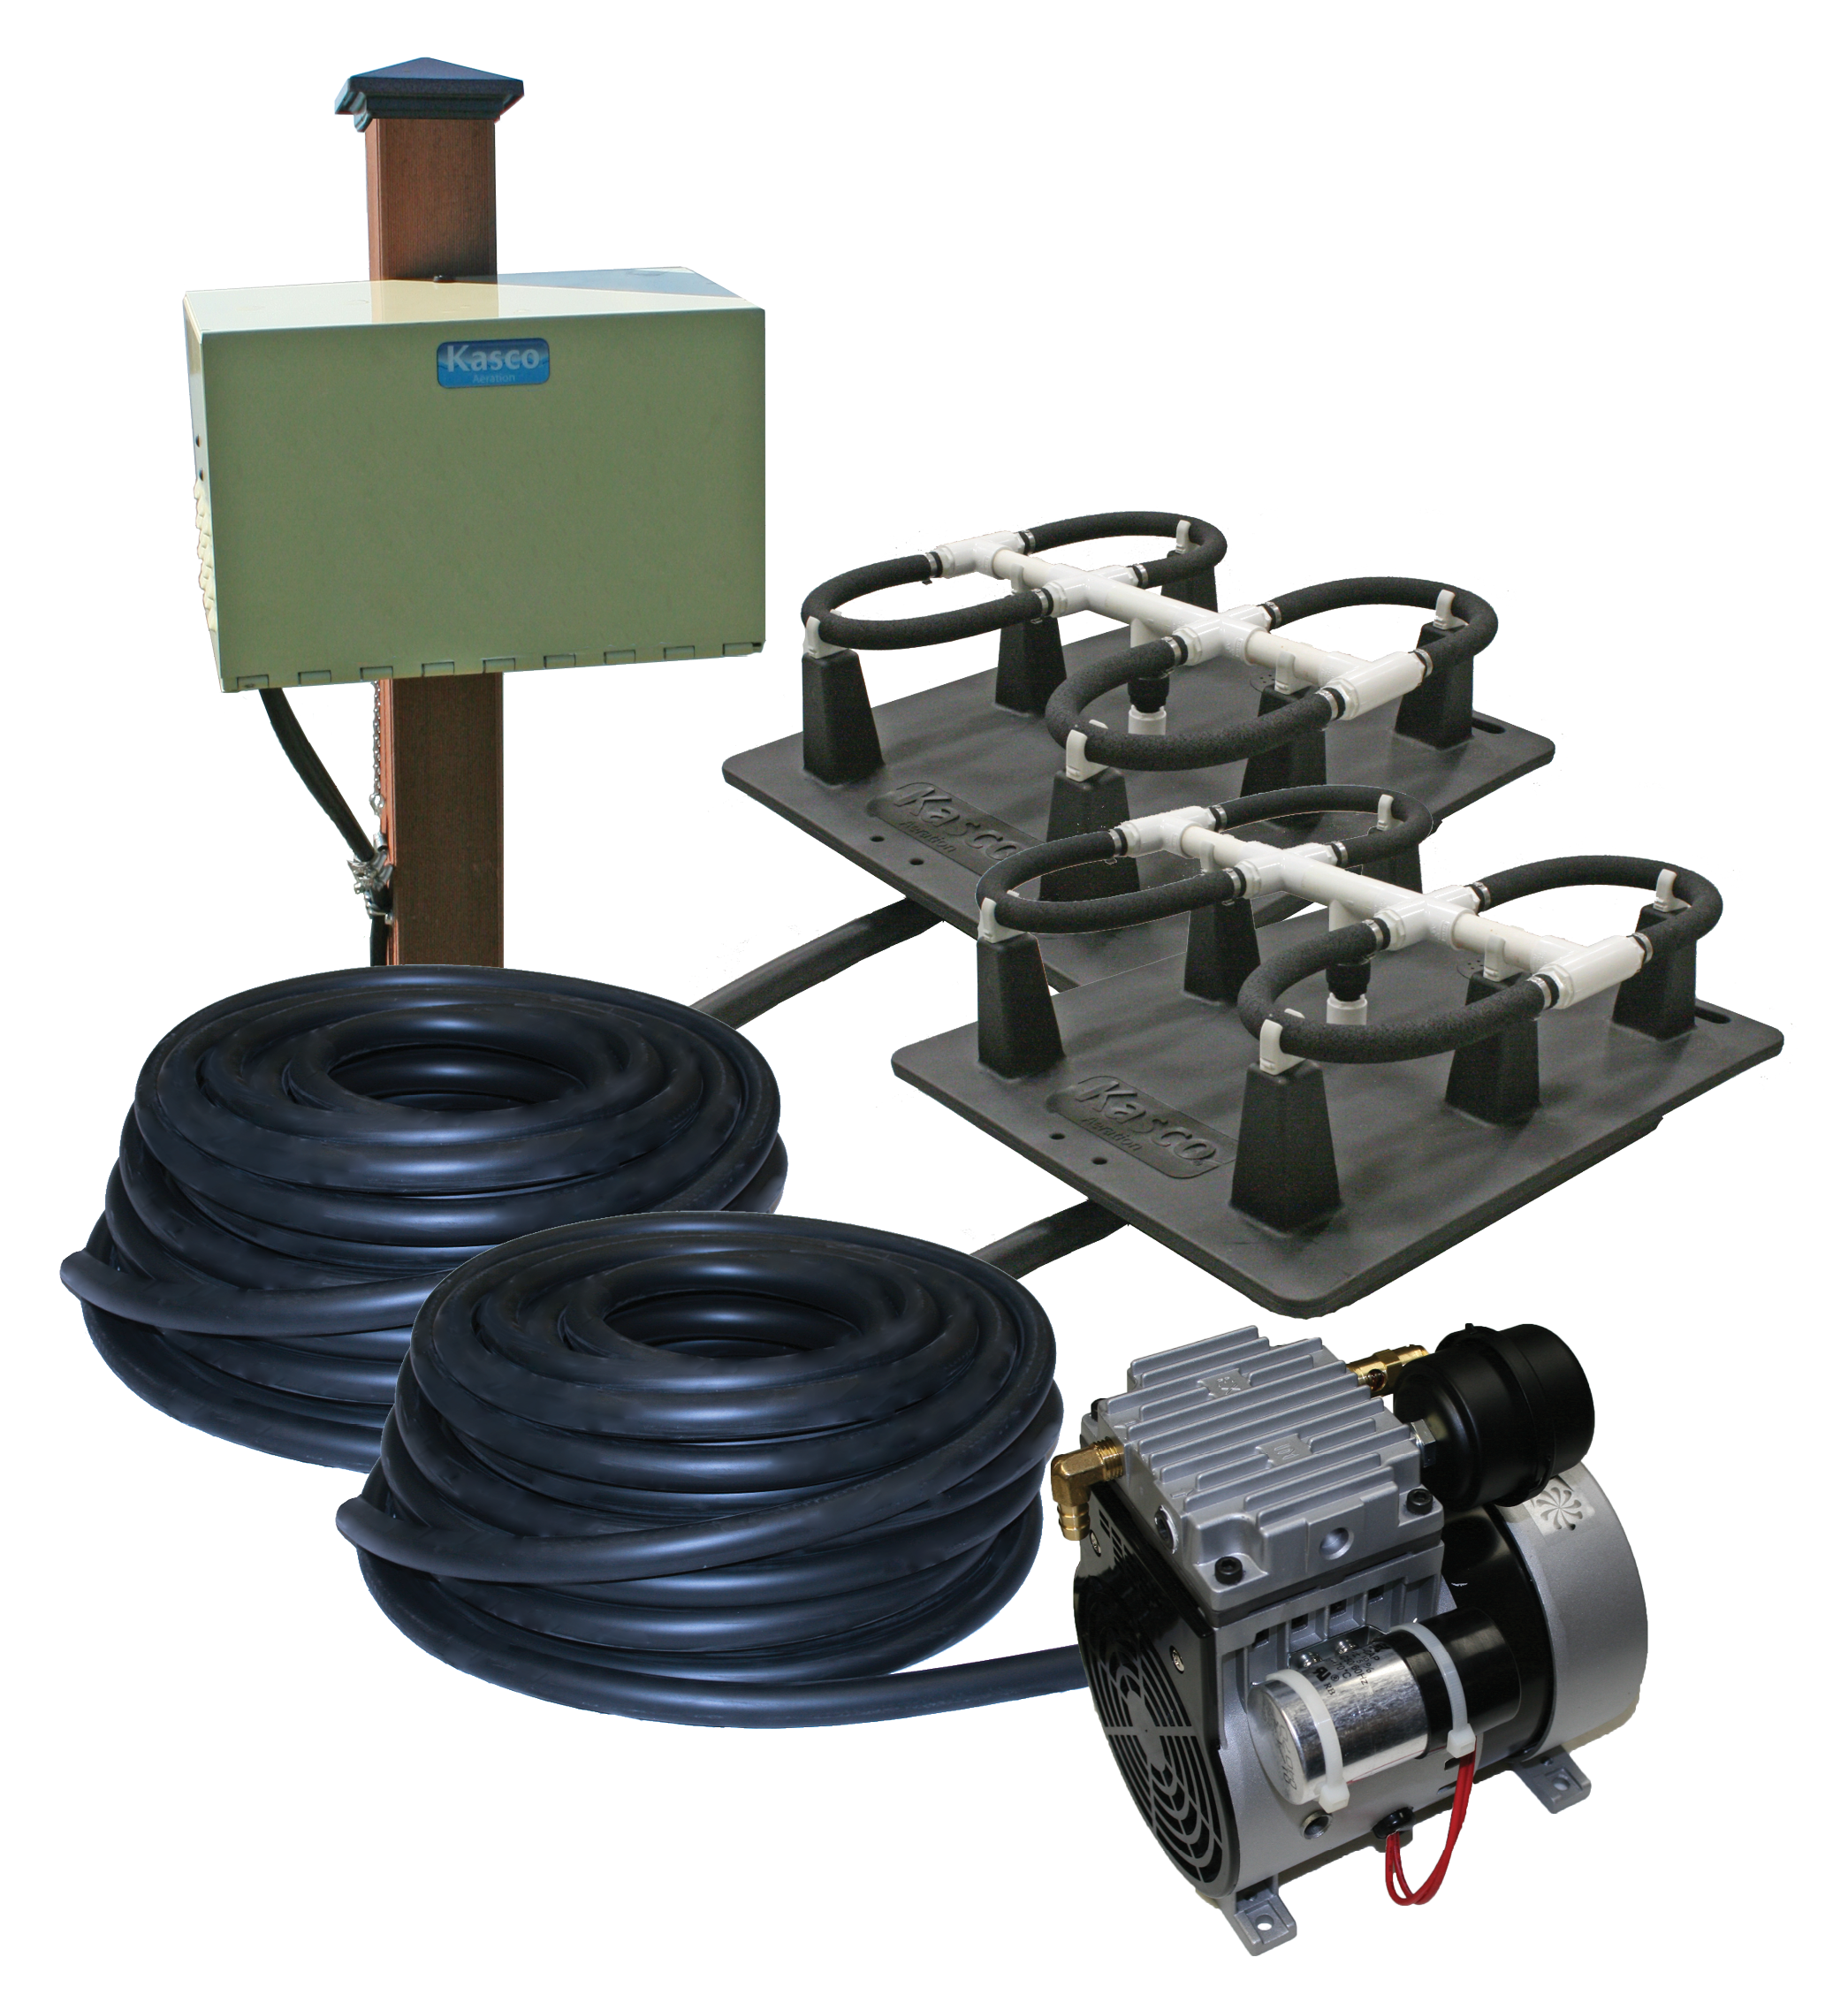 #654134 Robust Aire RA2 PM Two Diffuser Aerator System Pond  Recommended 5837 Pond Diffuser Aerators pics with 2091x2257 px on helpvideos.info - Air Conditioners, Air Coolers and more